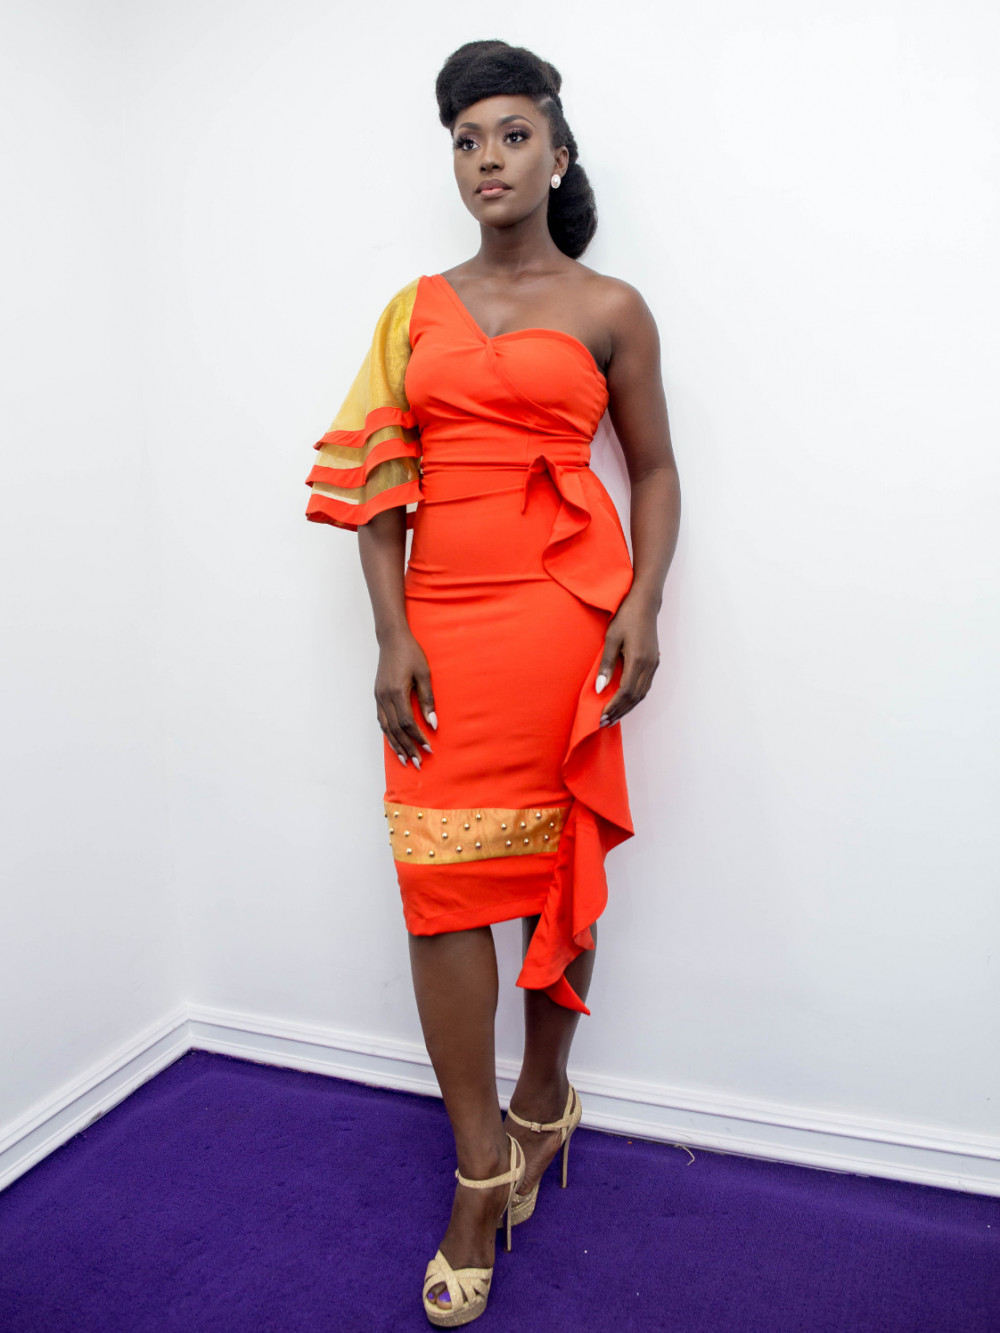 Tailor Made: Check Out These Trendy Ankara Styles